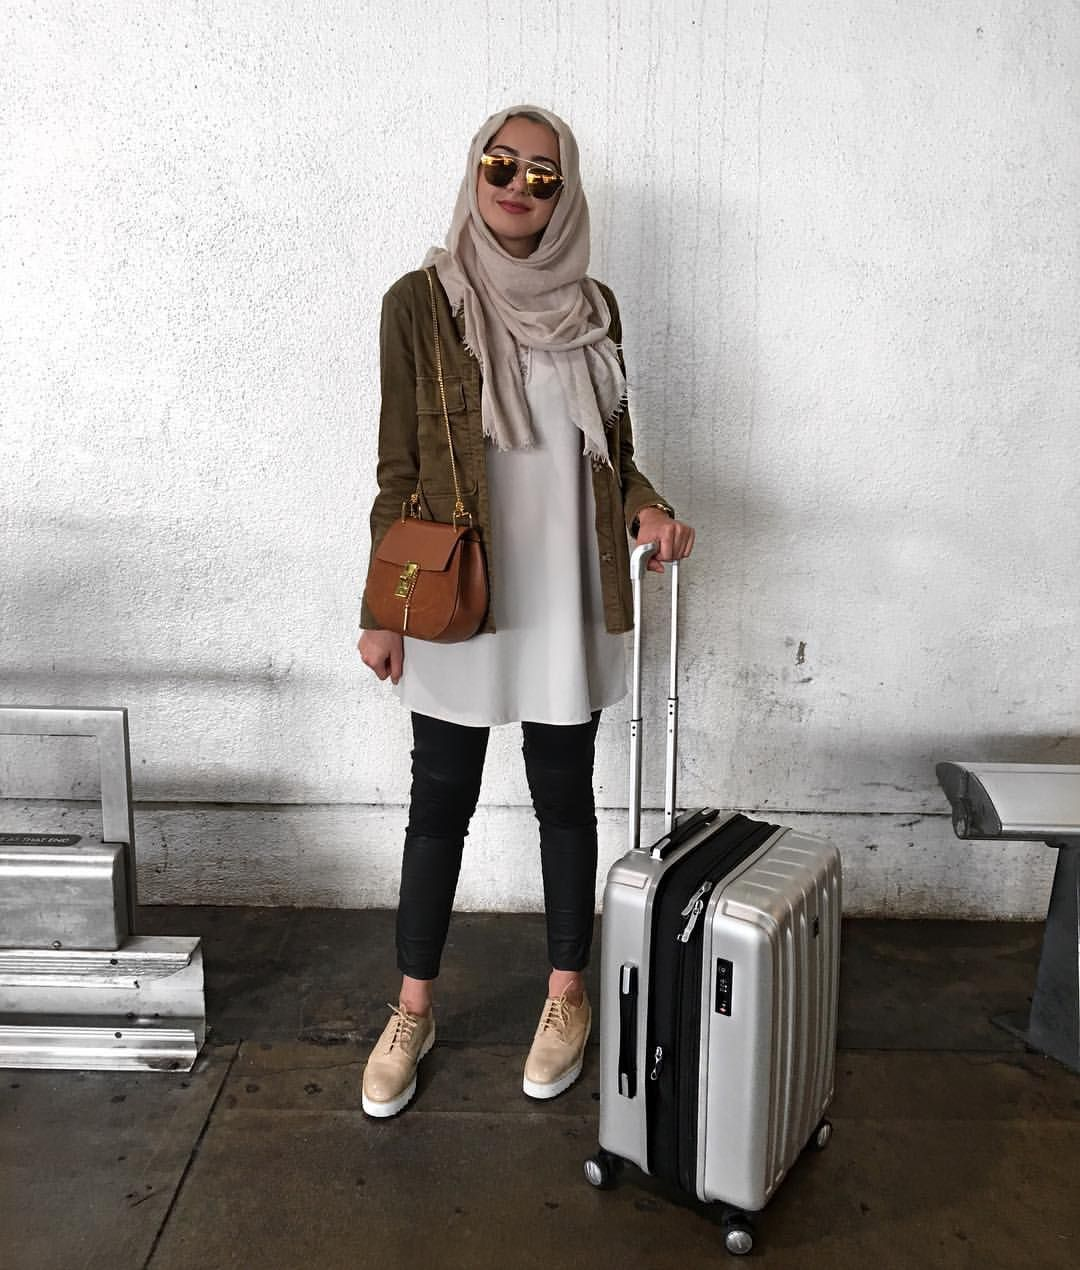 Style hijab inspiration- photo by @summeralbarcha on ...